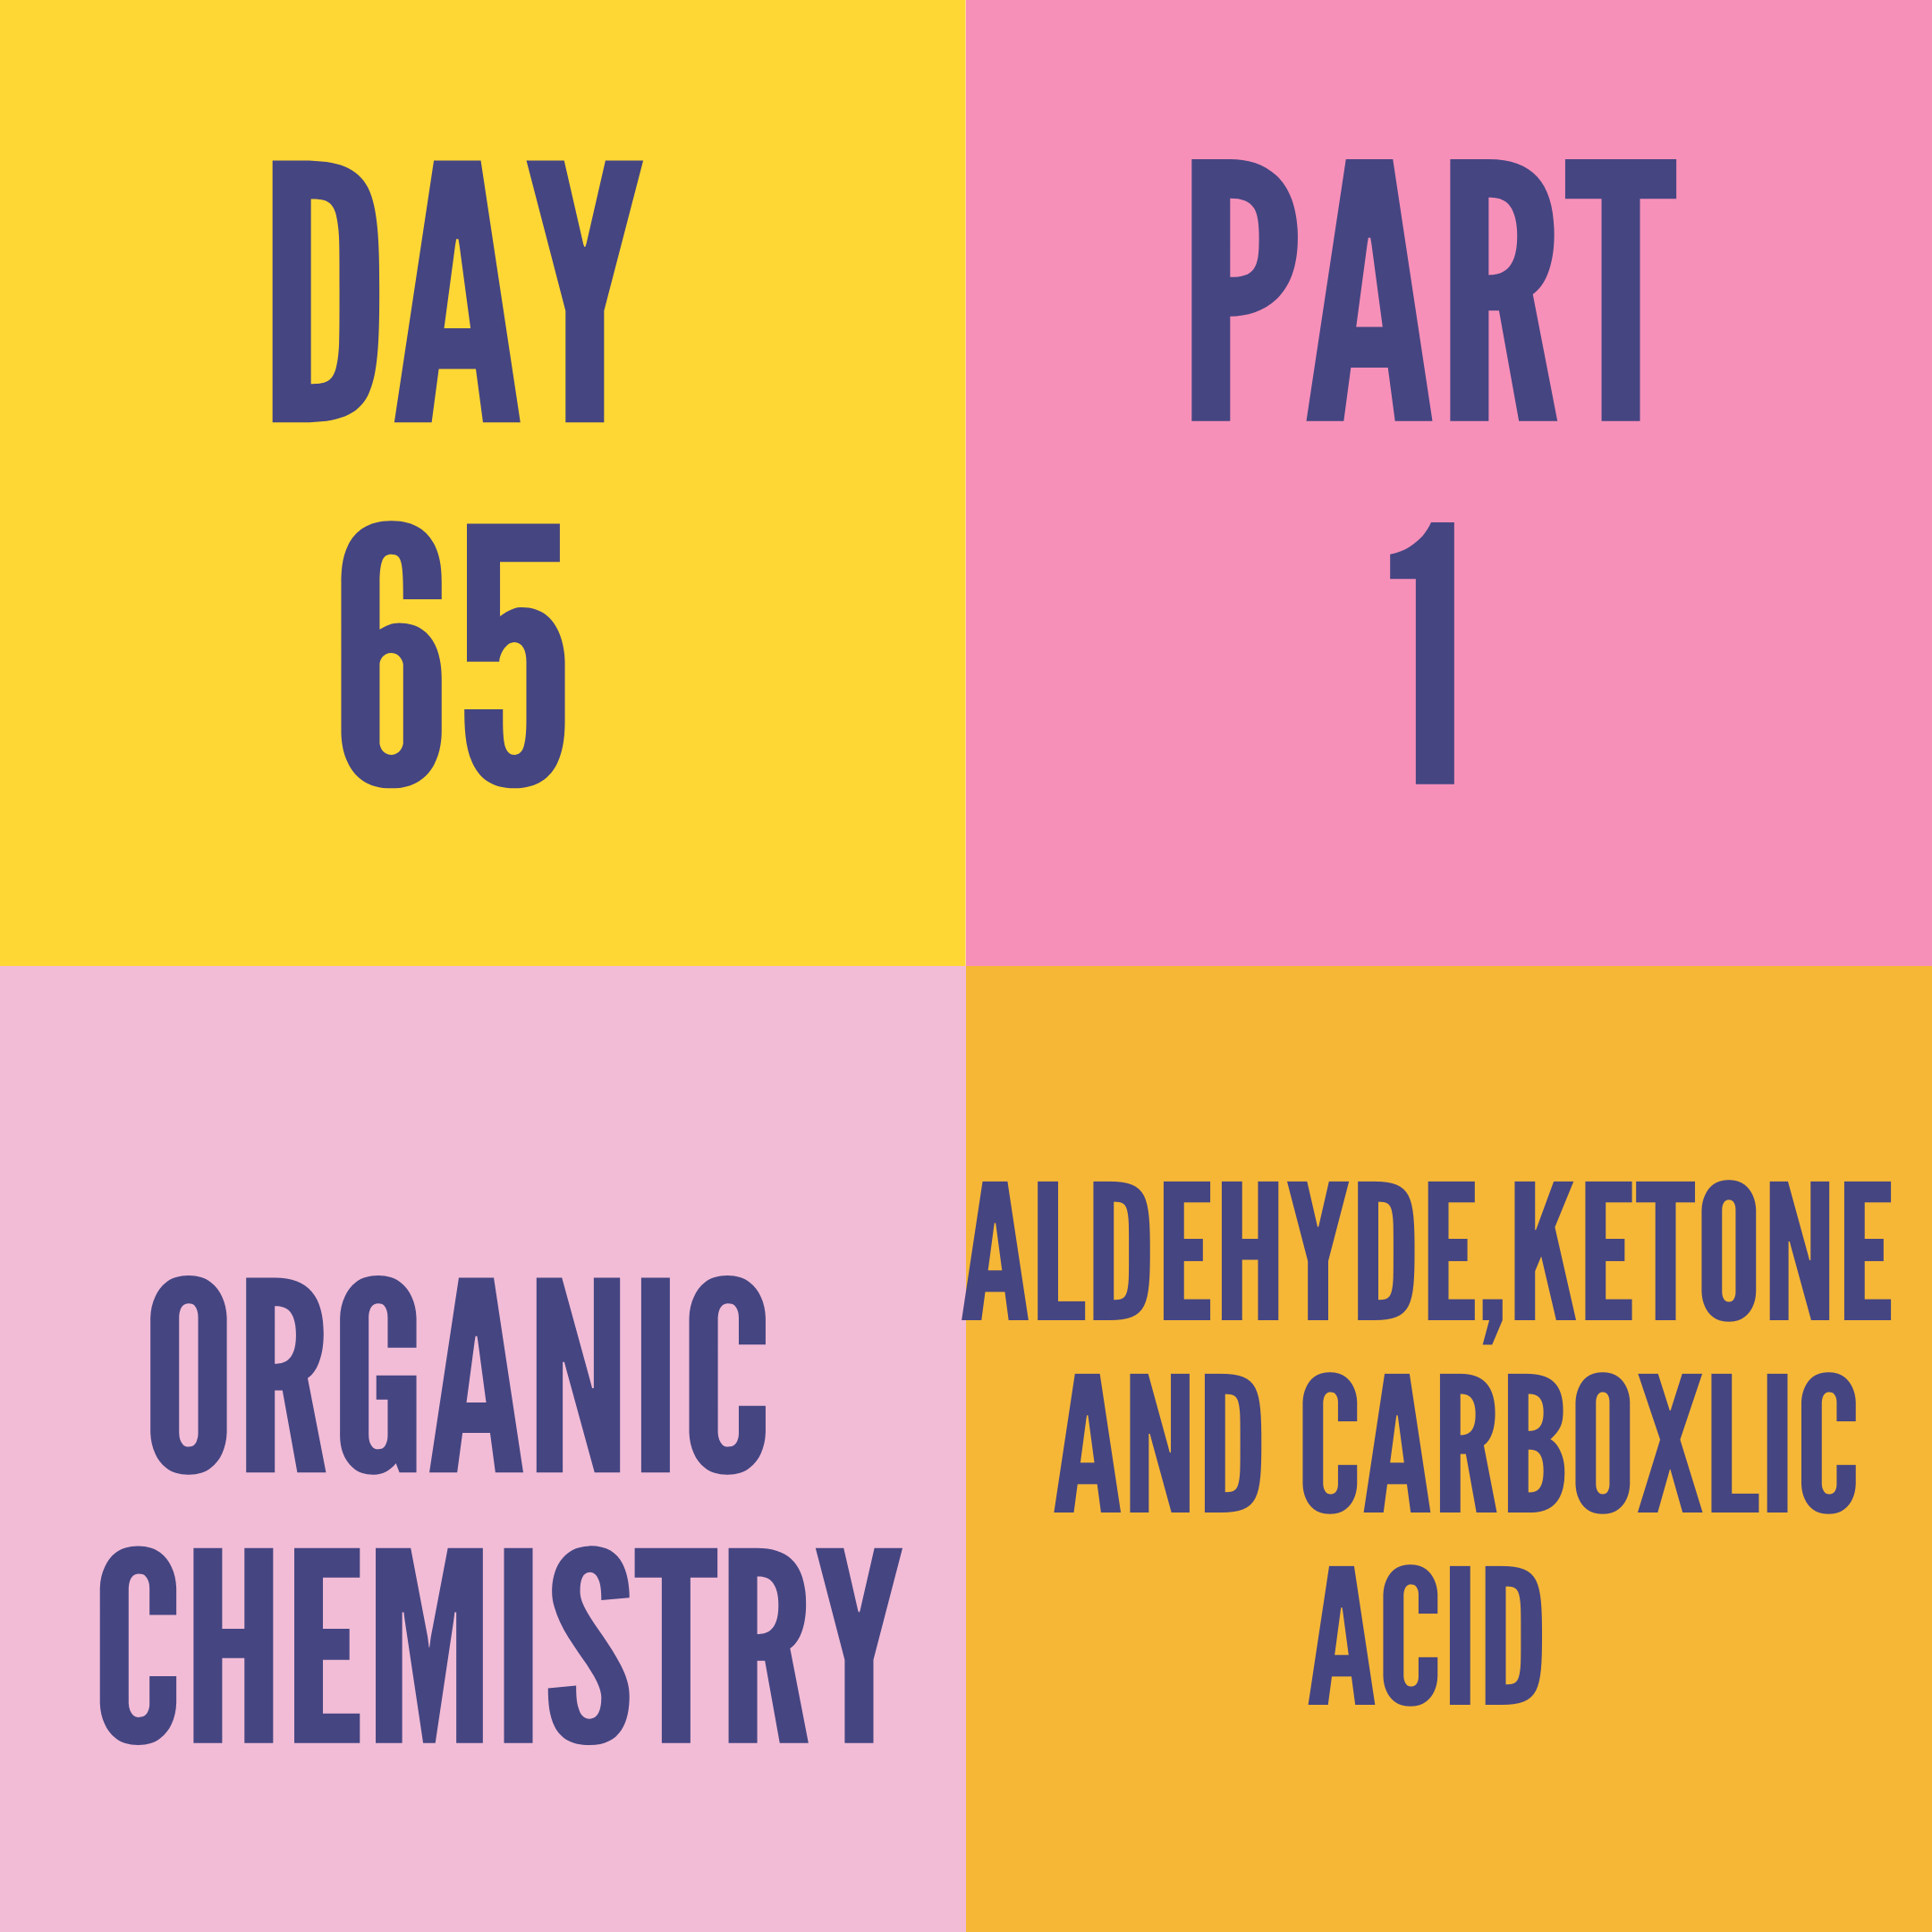 DAY-65 PART-1 ALDEHYDE,KETONE AND CARBOXLIC ACID